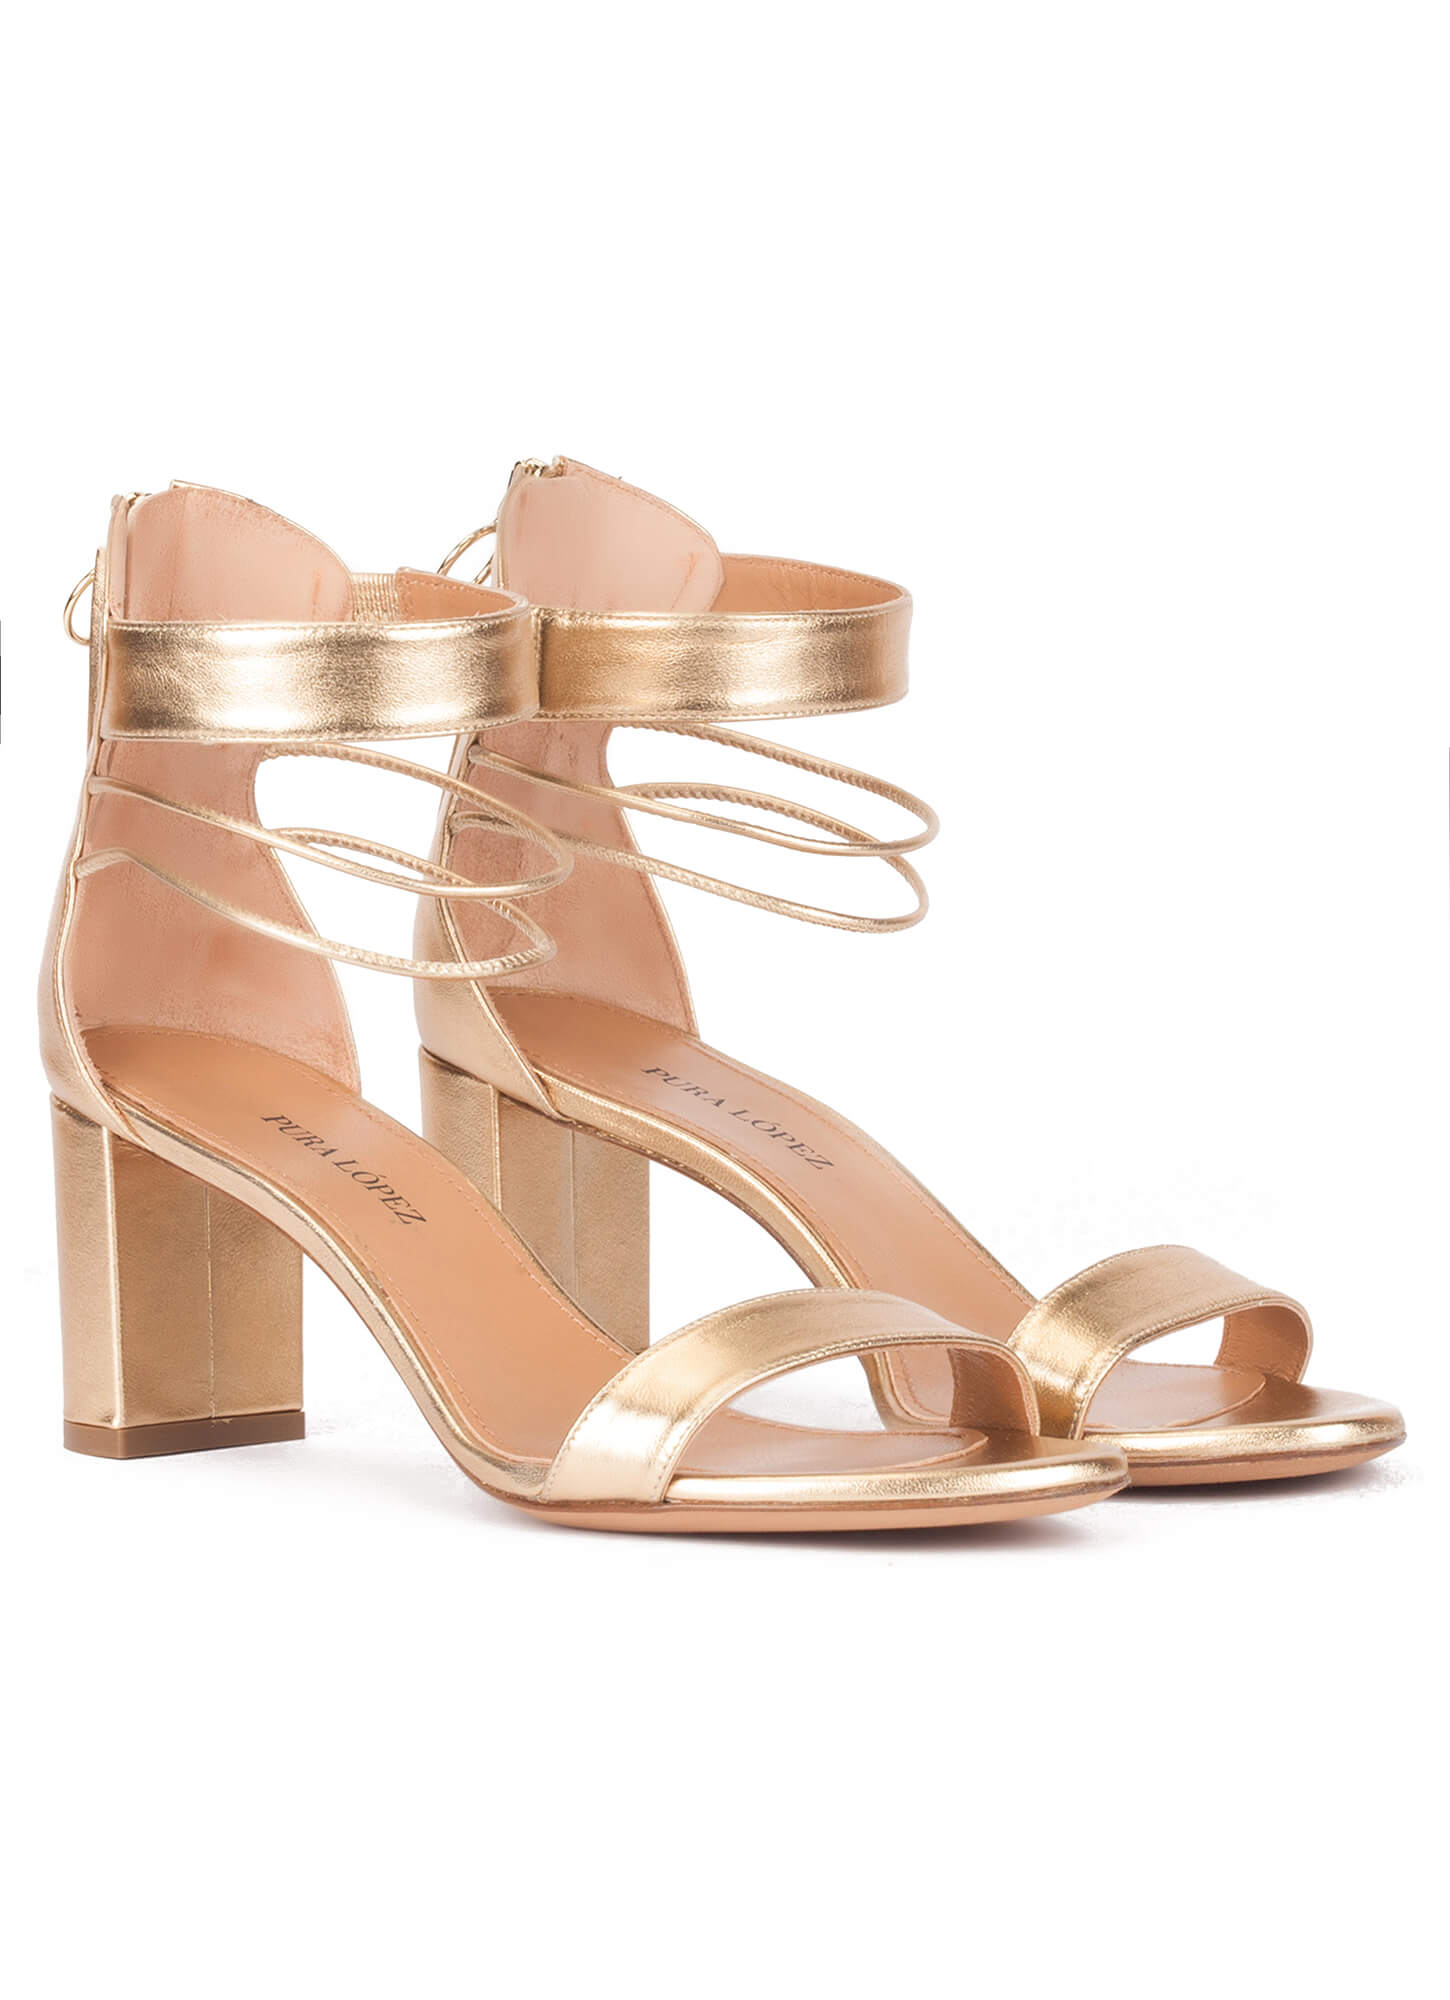 fcfce433823b Gold leather mid block heel sandals with ankle strap. Onore Pura López